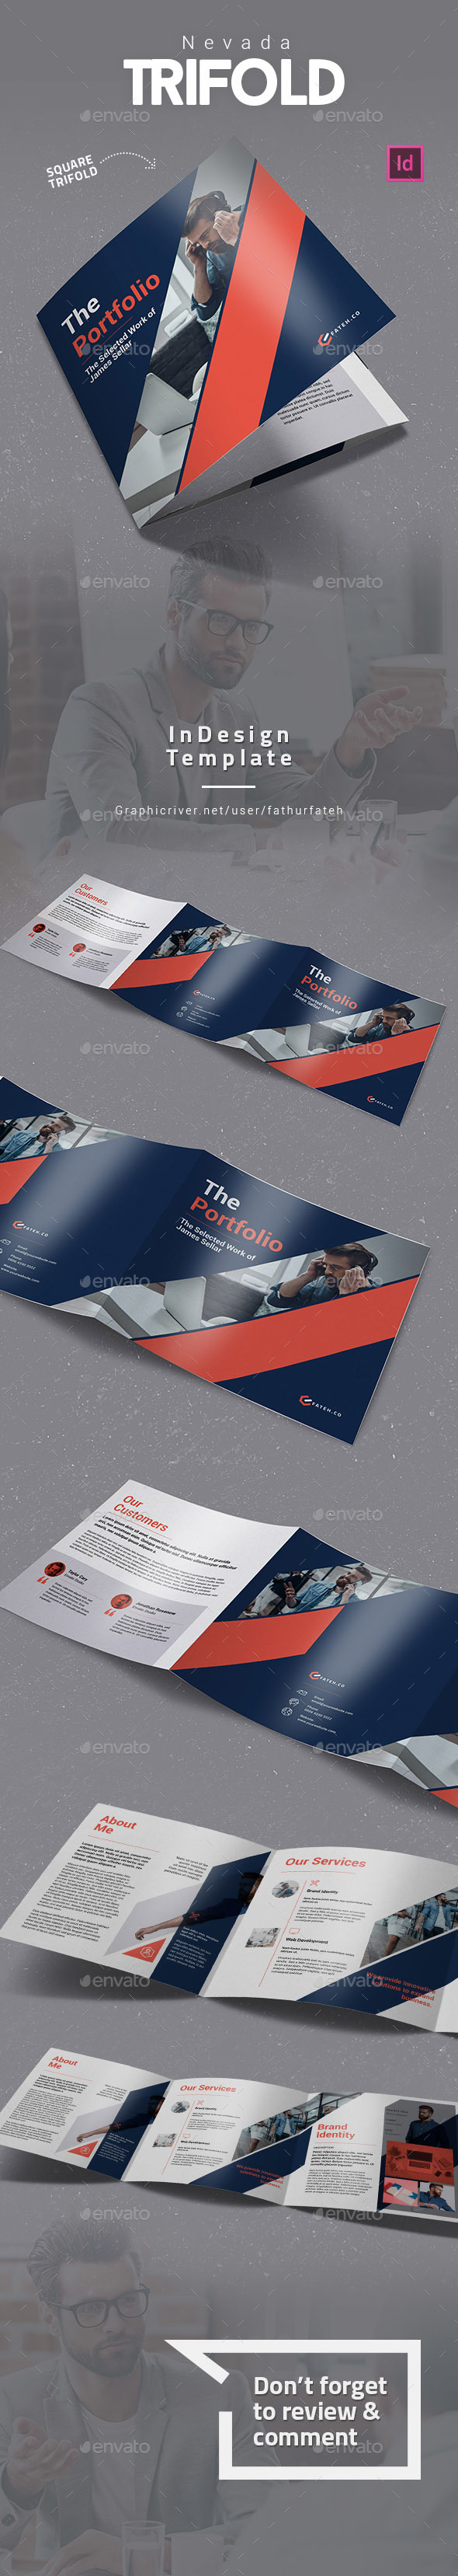 Nevada Square Trifold - Corporate Brochures